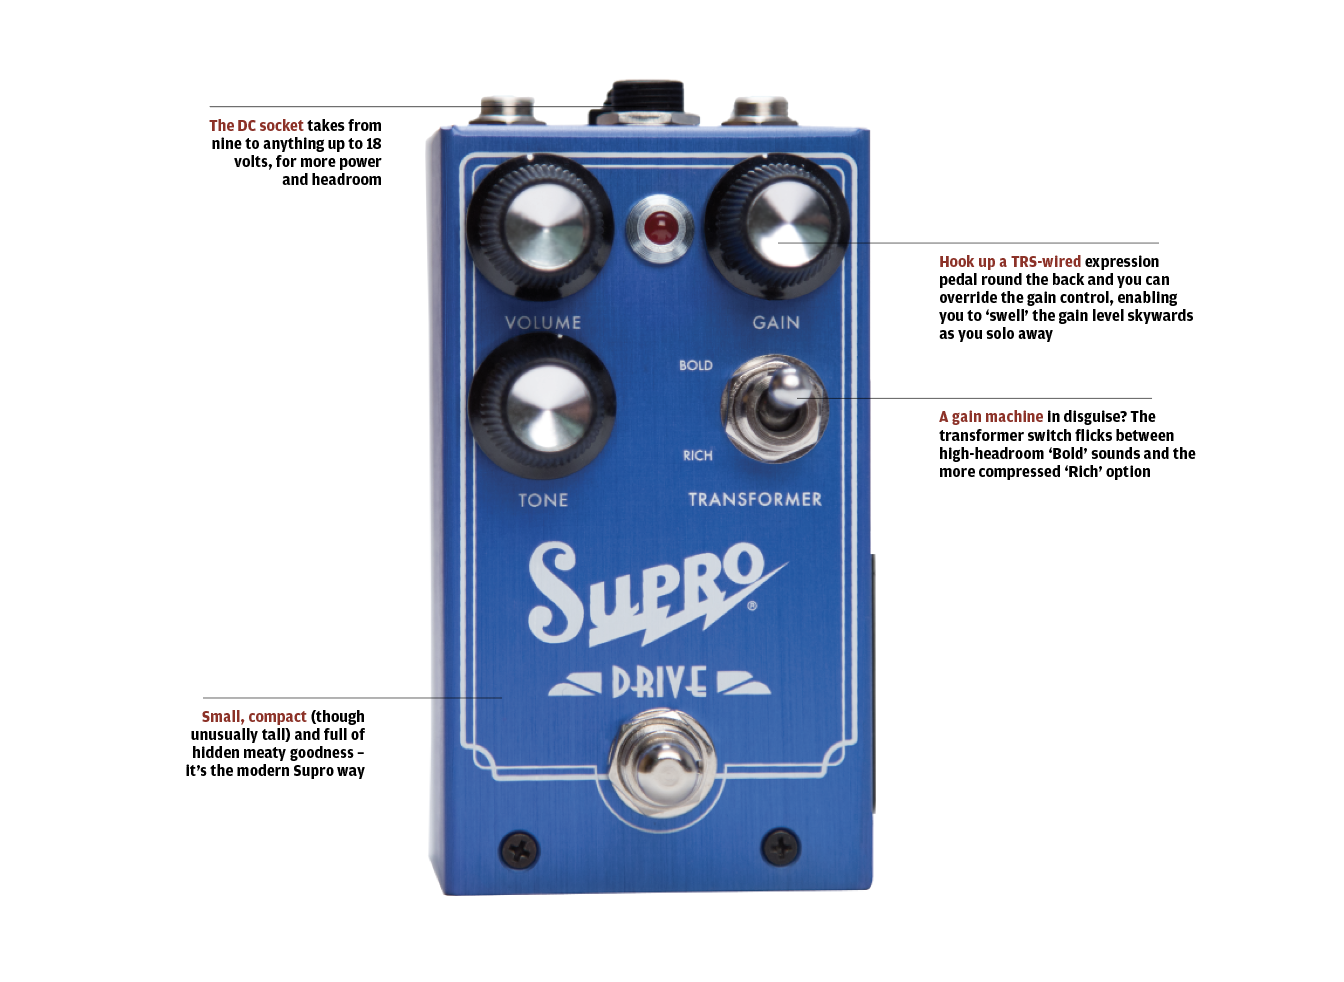 The 20 Best Fx Pedals In World Today All Things Wind Sound Effects Circuit A Musical Old Time Supro Amp Aping Overdrive With An Output Transformer And Intriguing Expression Pedal Option For Increasing Gain